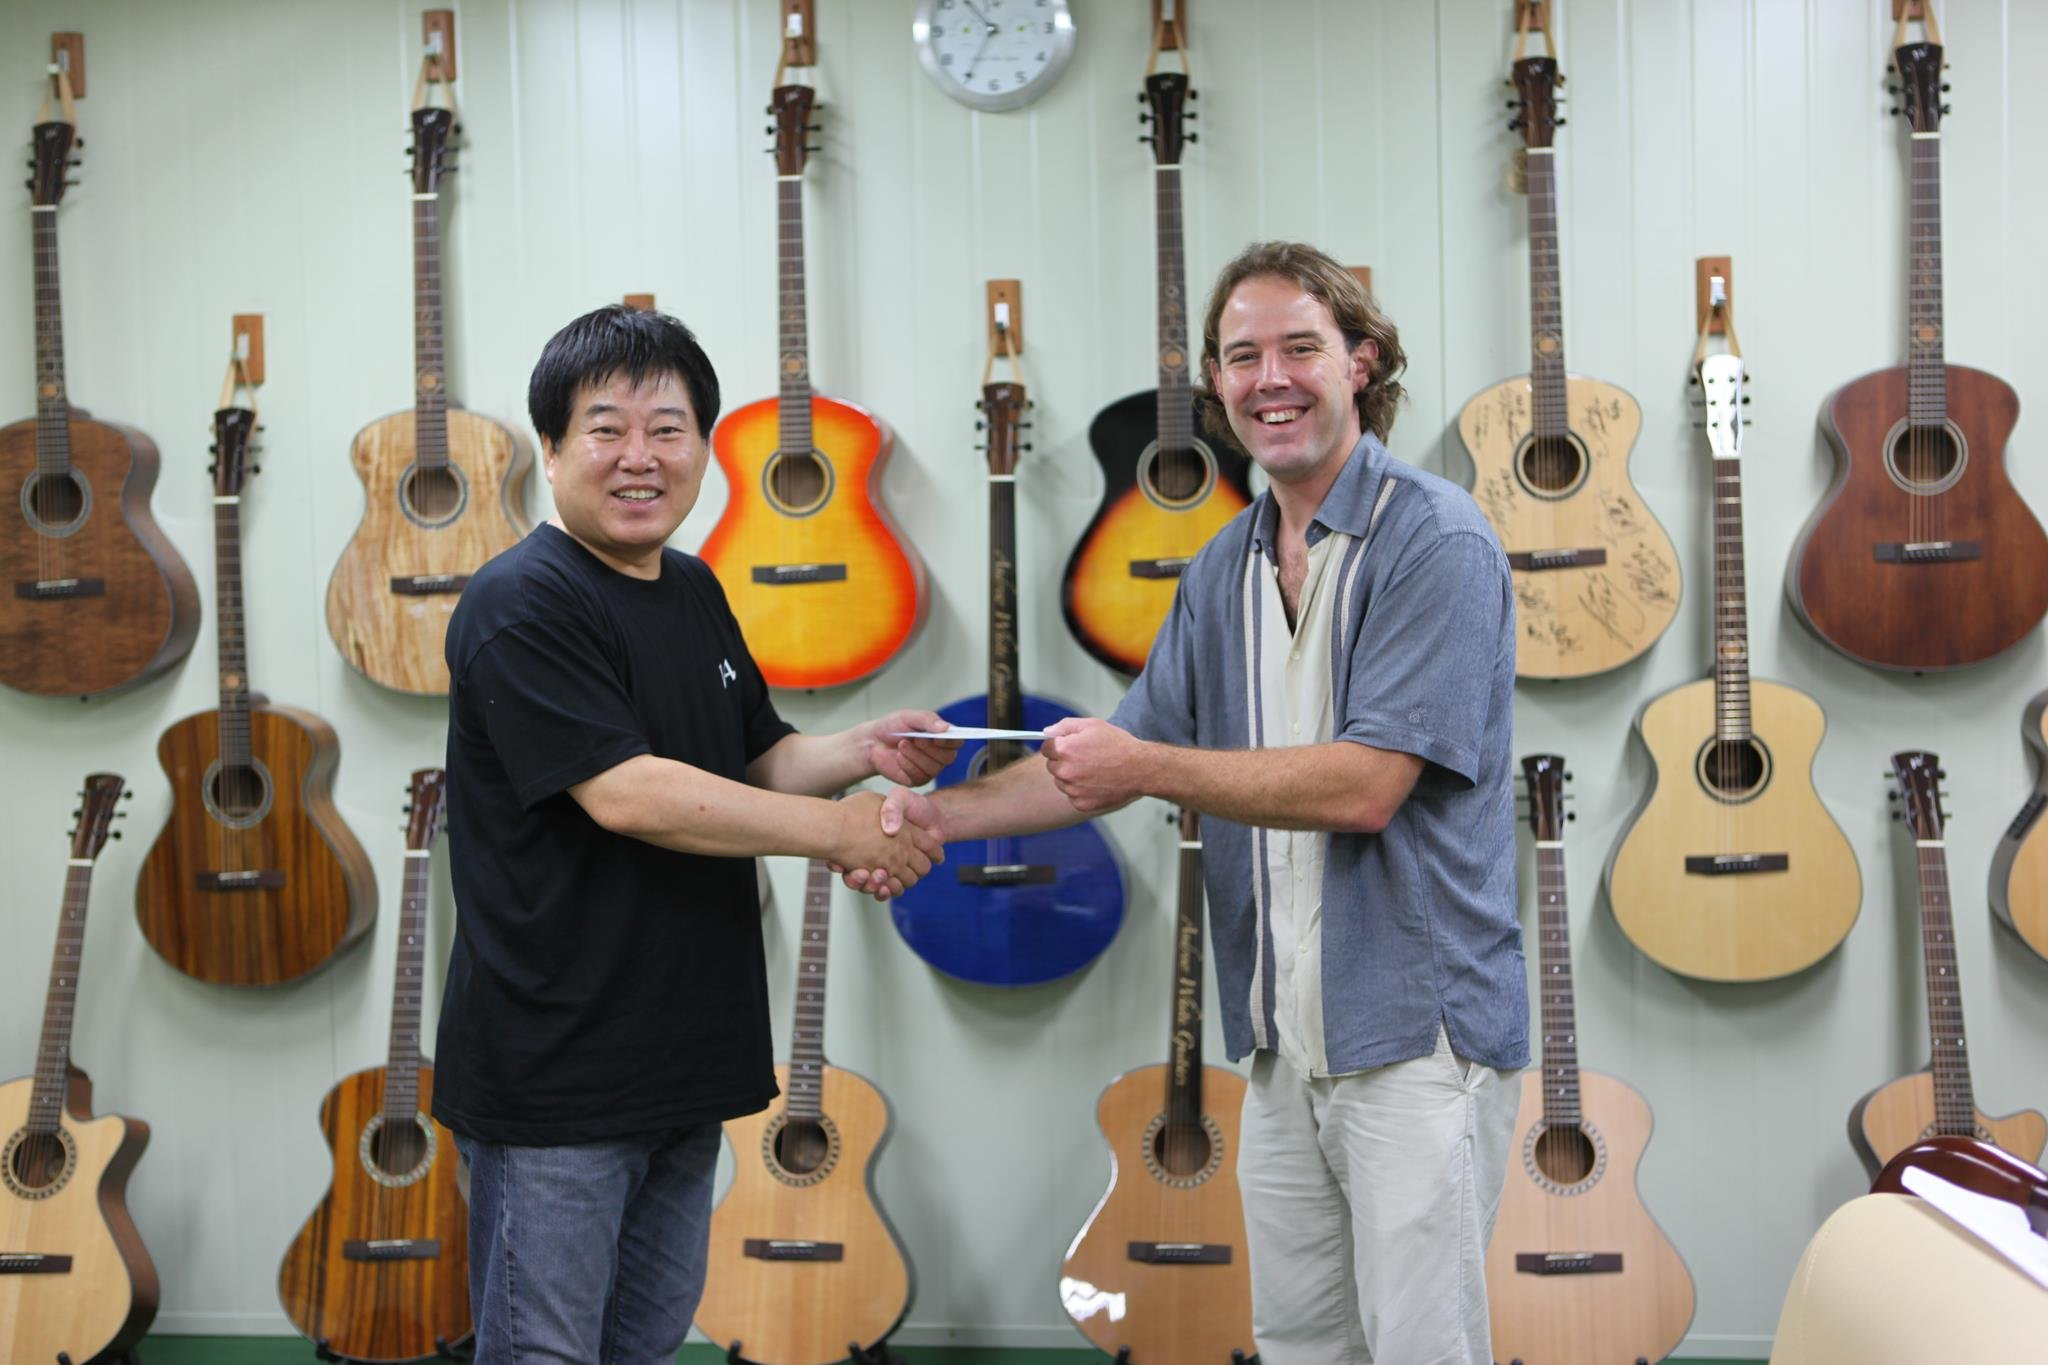 korea factory job hiring http://www.wvnstv.com/story/20418803/morgantown-luthier-andrew-white-finds-new-way-to-make-classic-guitars